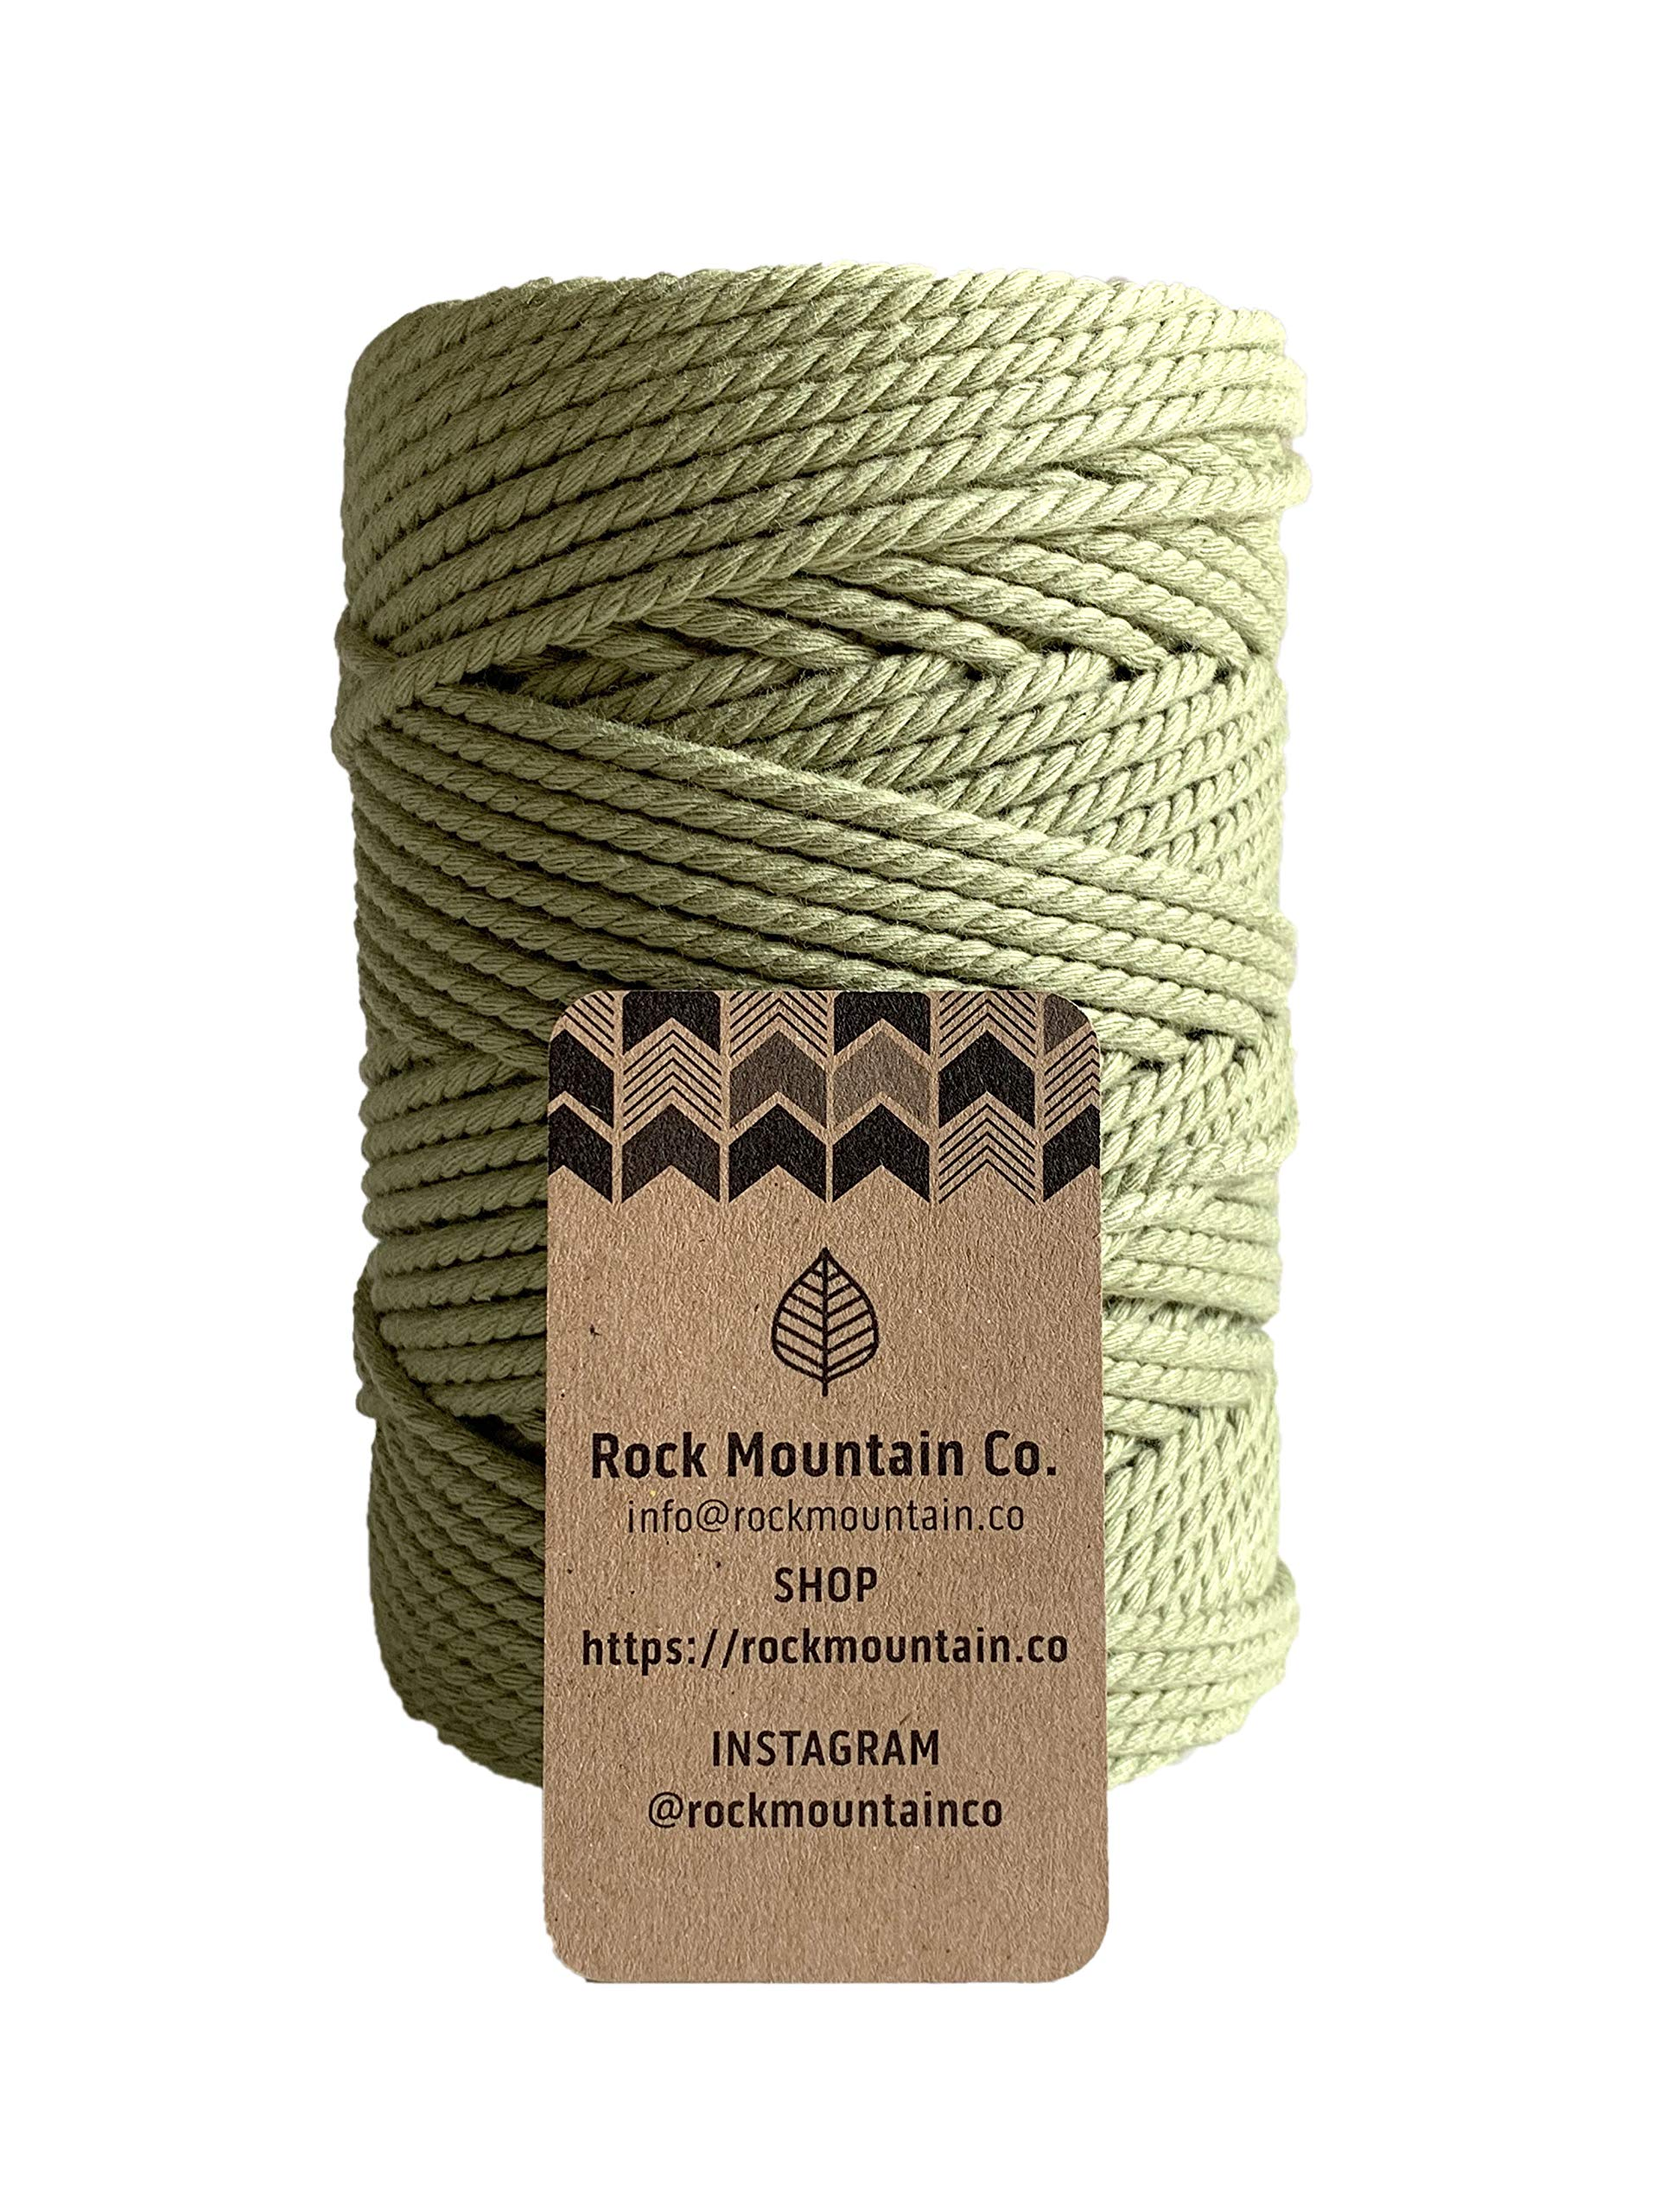 4mm 3 Strand Twisted Macrame Rope - Moss Green